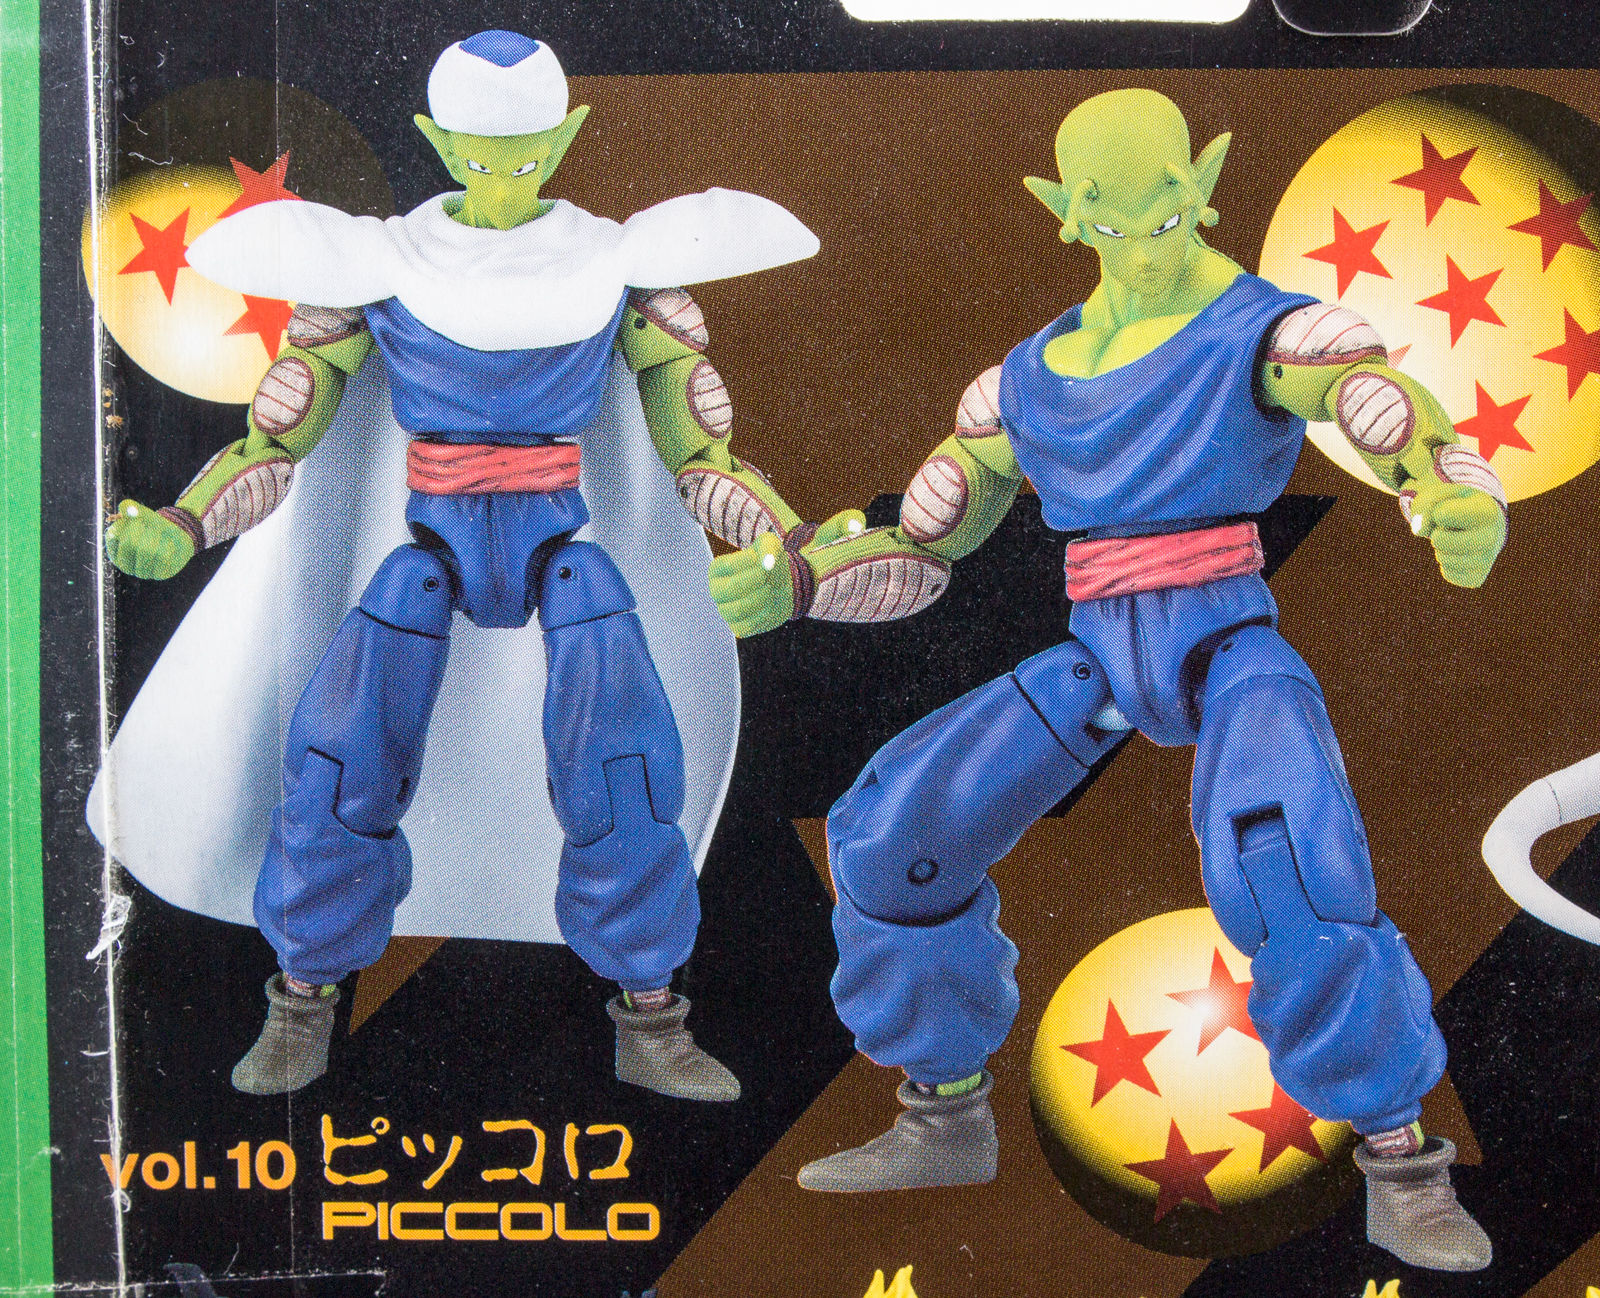 Ultimate Figure Full Action – Vol. 10 Piccolo